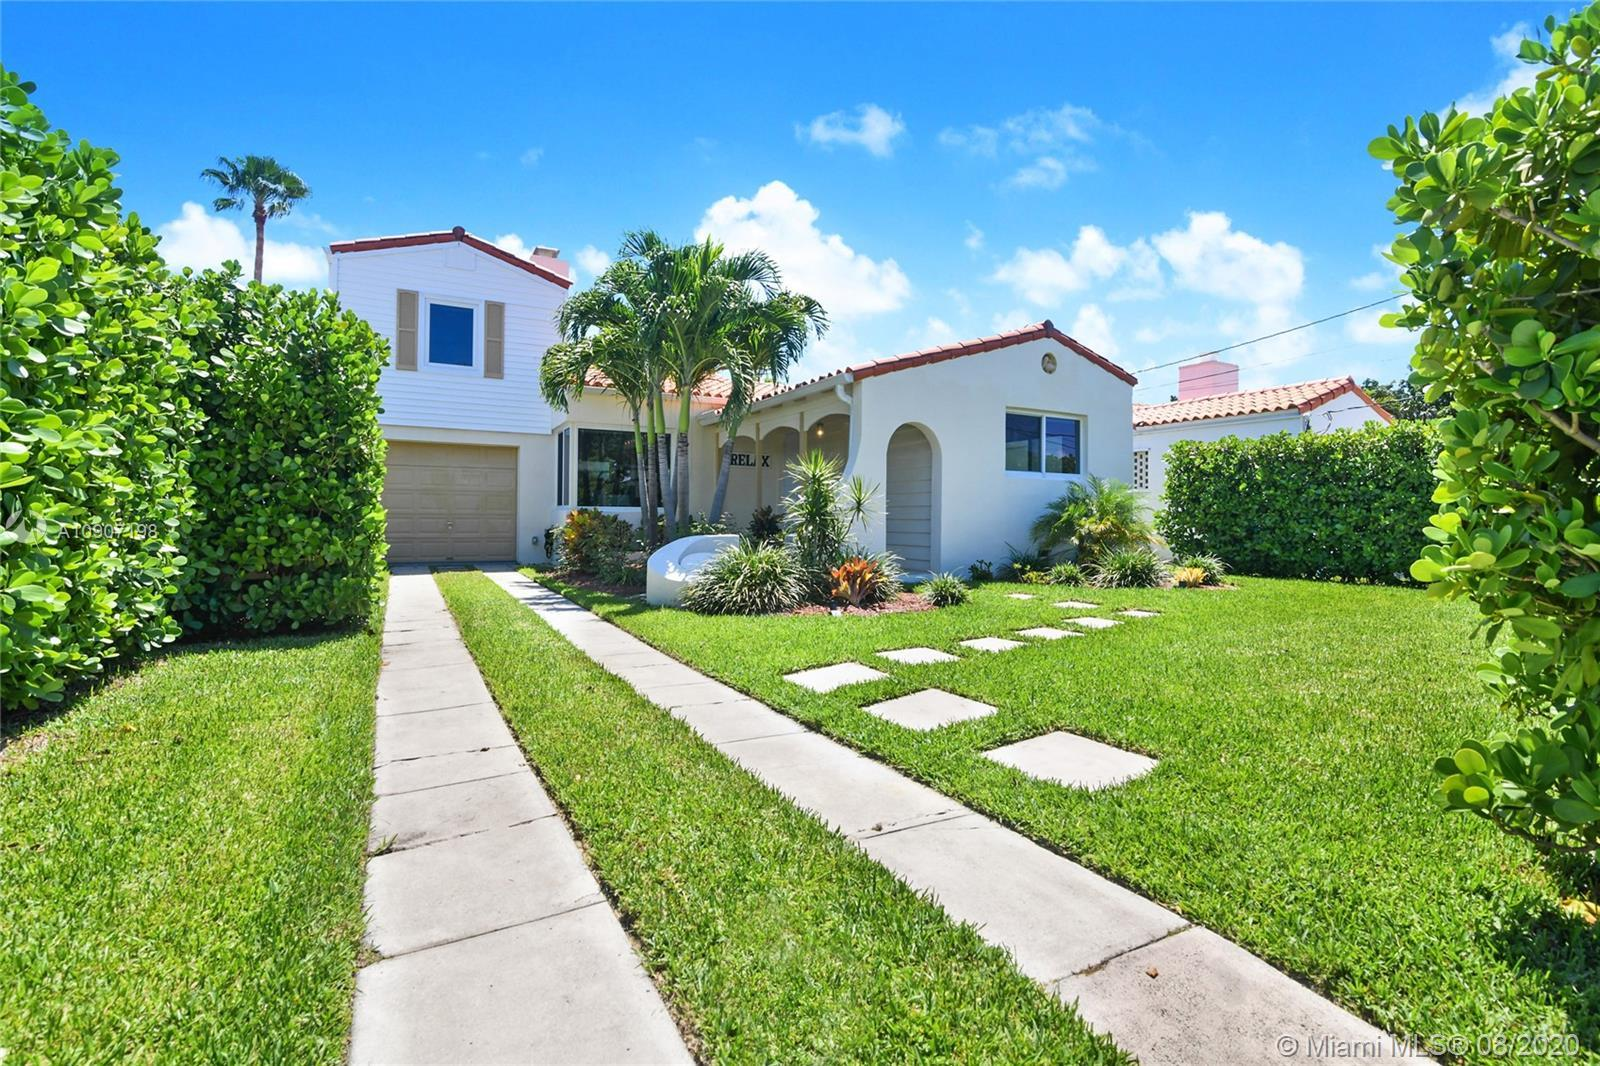 Only 4 blocks to the ocean! Bright and beautiful beach house in the desirable oceanfront Town of Sur